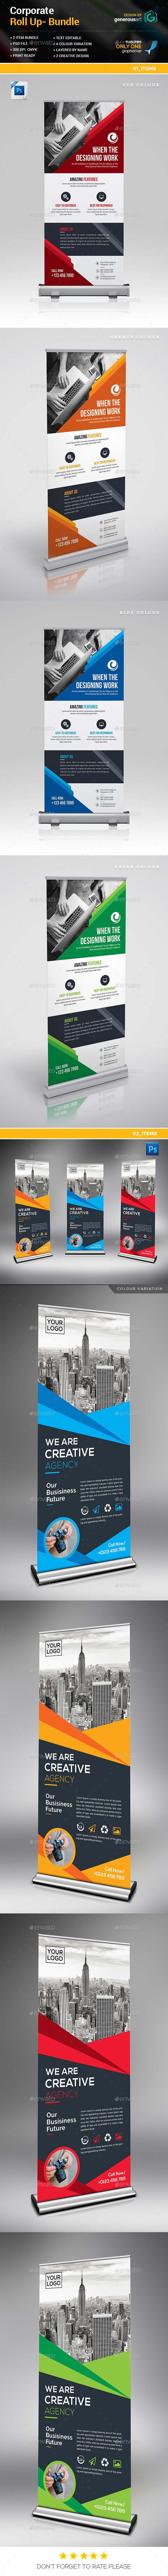 GraphicRiver Roll-Up Banner Bundle 2 in 1 21147274